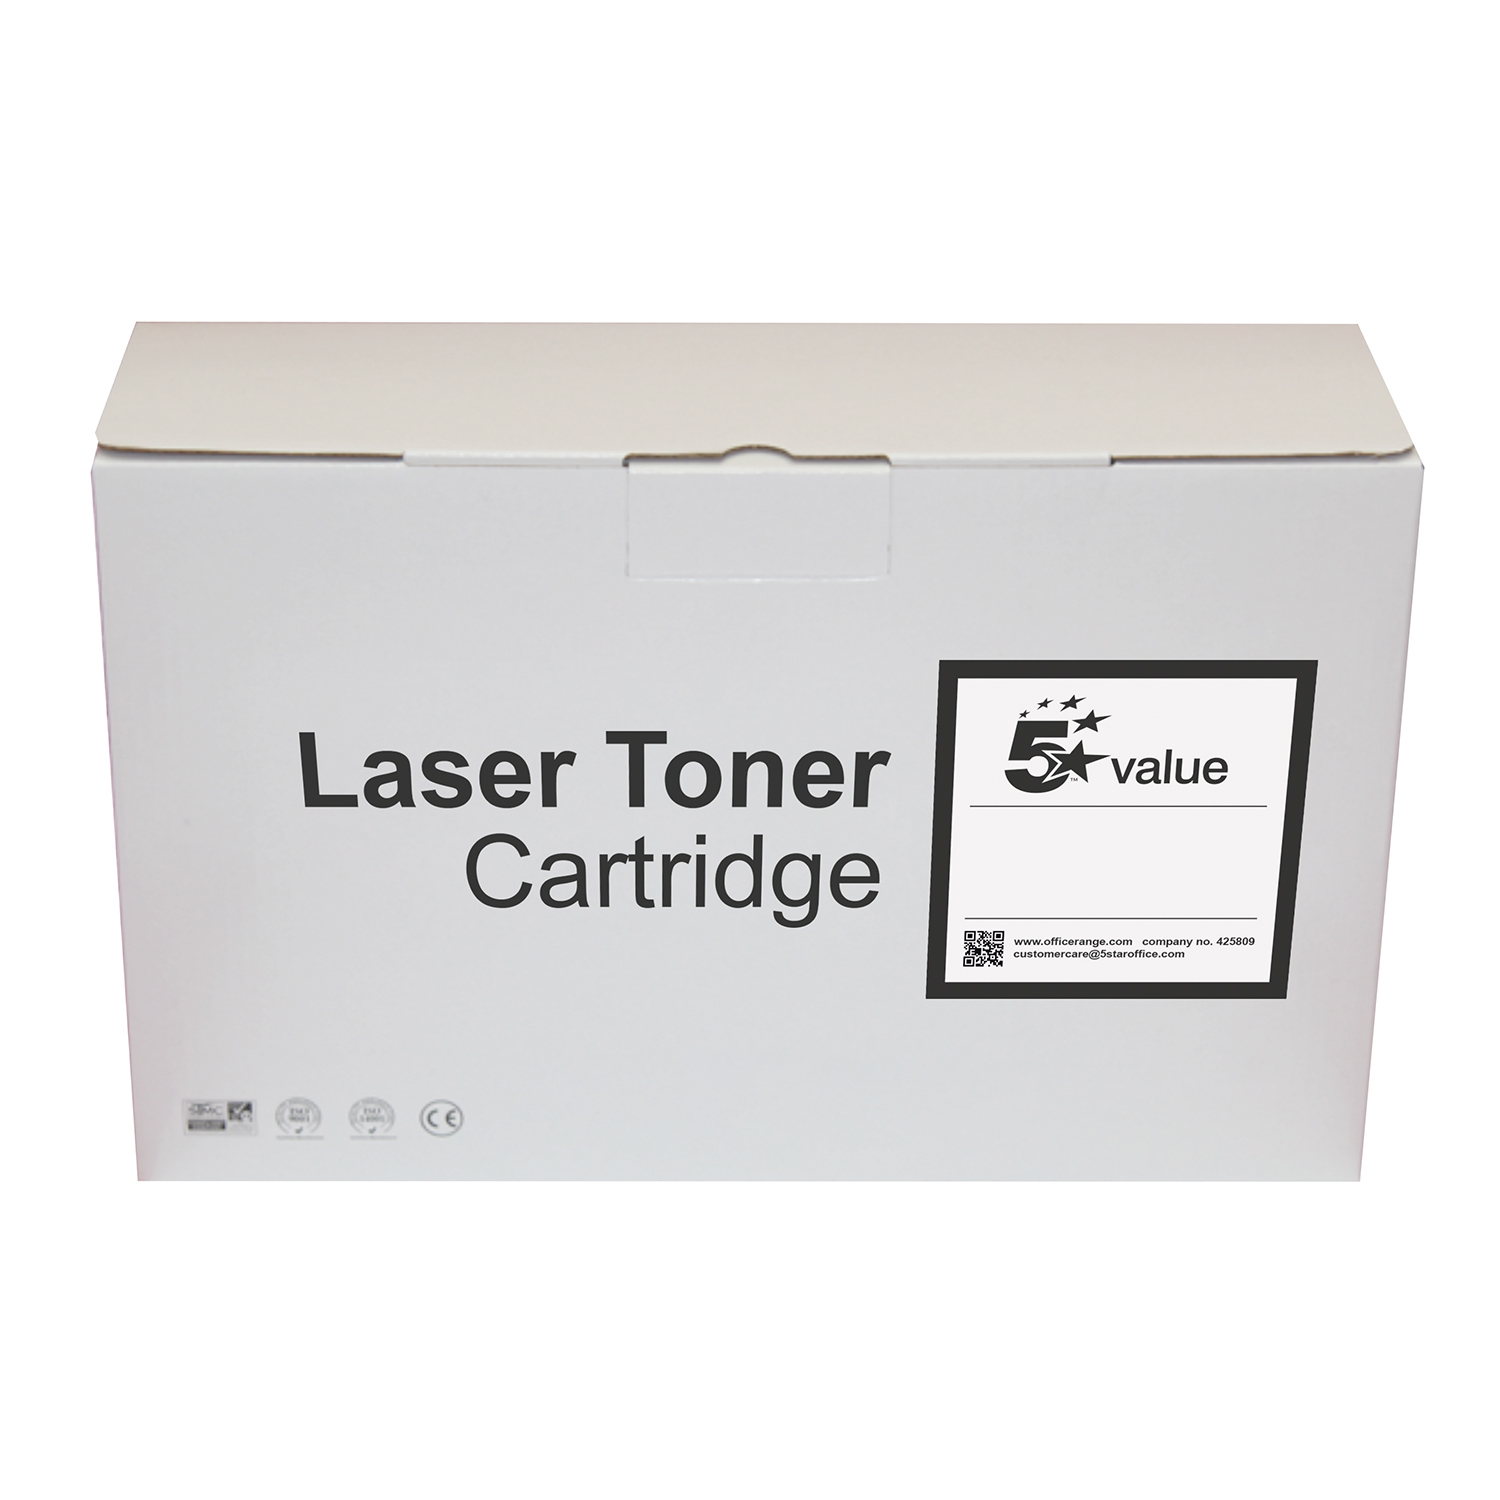 5 Star Value Remanufactured Laser Toner Cartridge Page Life 5000pp Black [Samsung MLT-D205L Alternative]